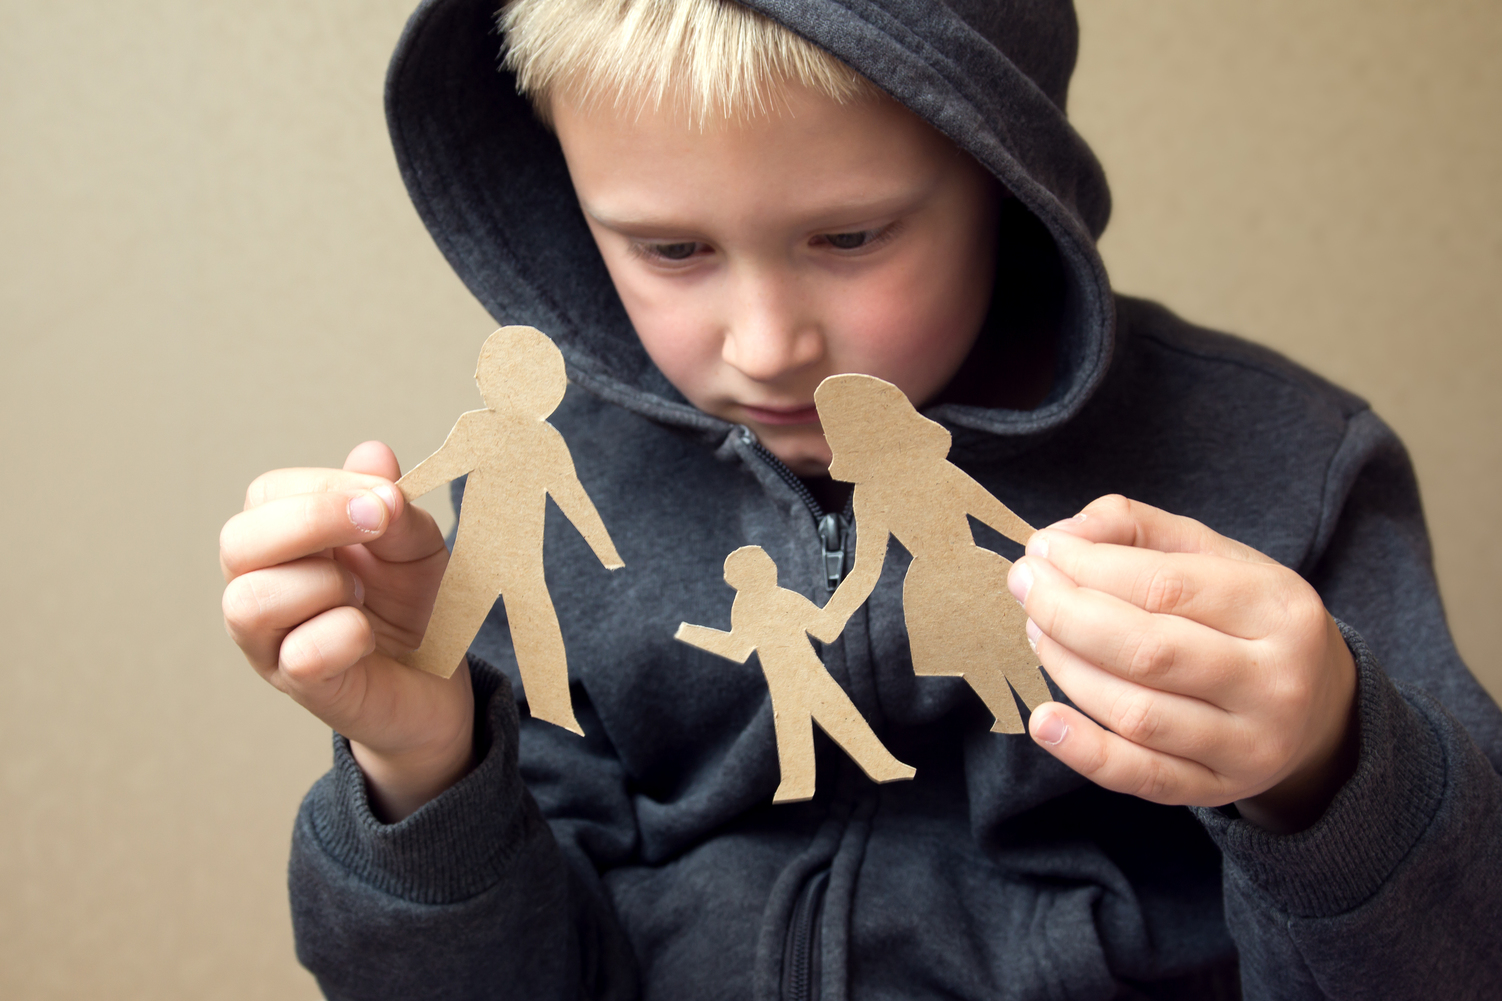 Child Custody in Australia: Essential Things to Know